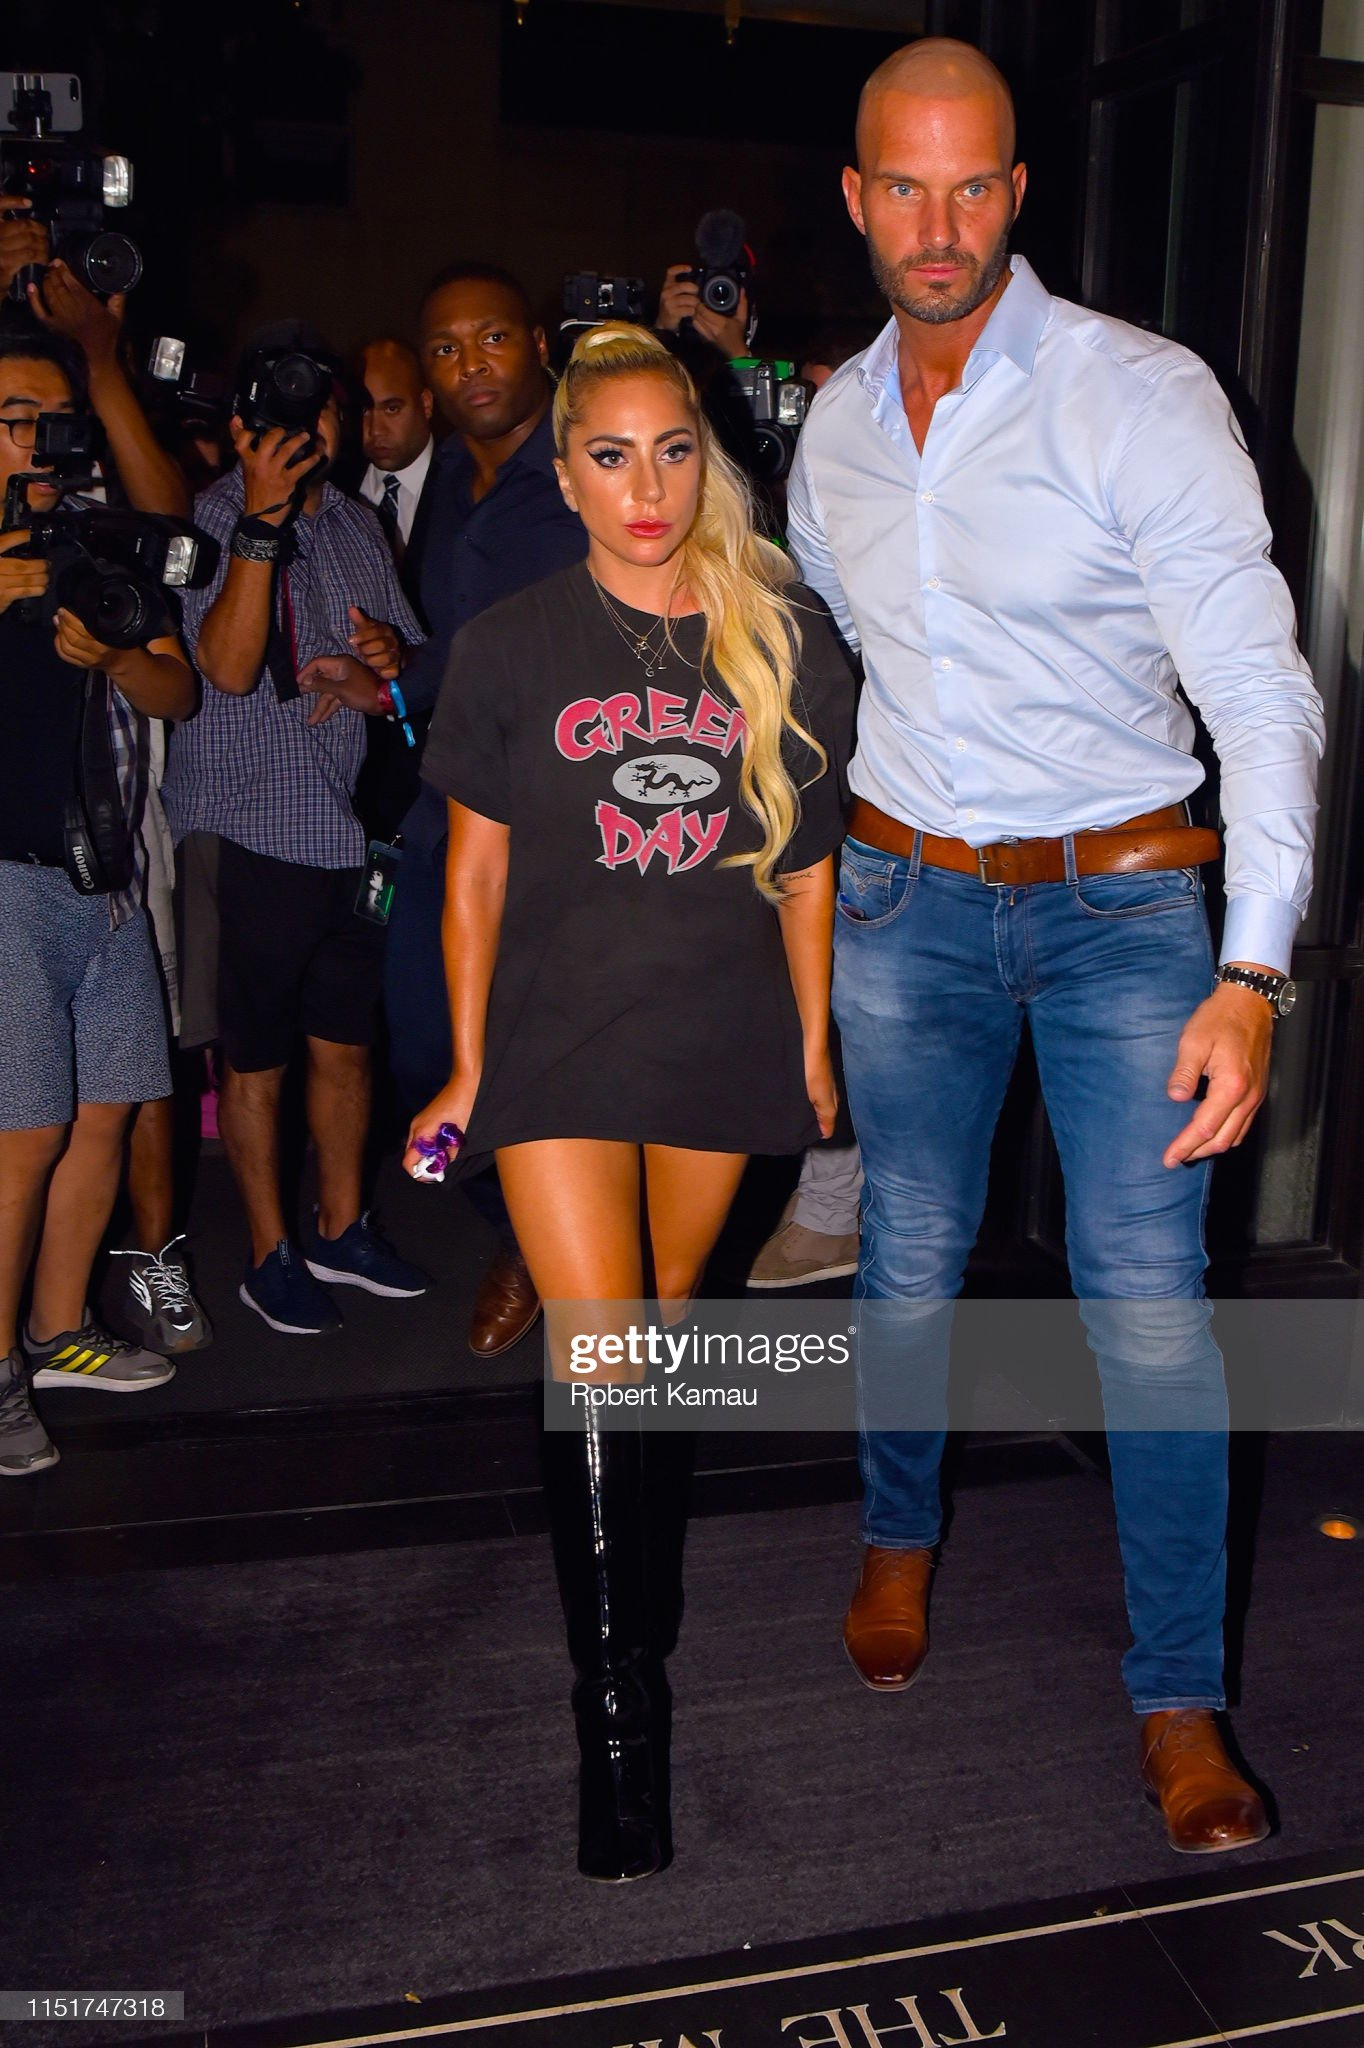 lady-gaga-seen-out-and-about-in-manhatta